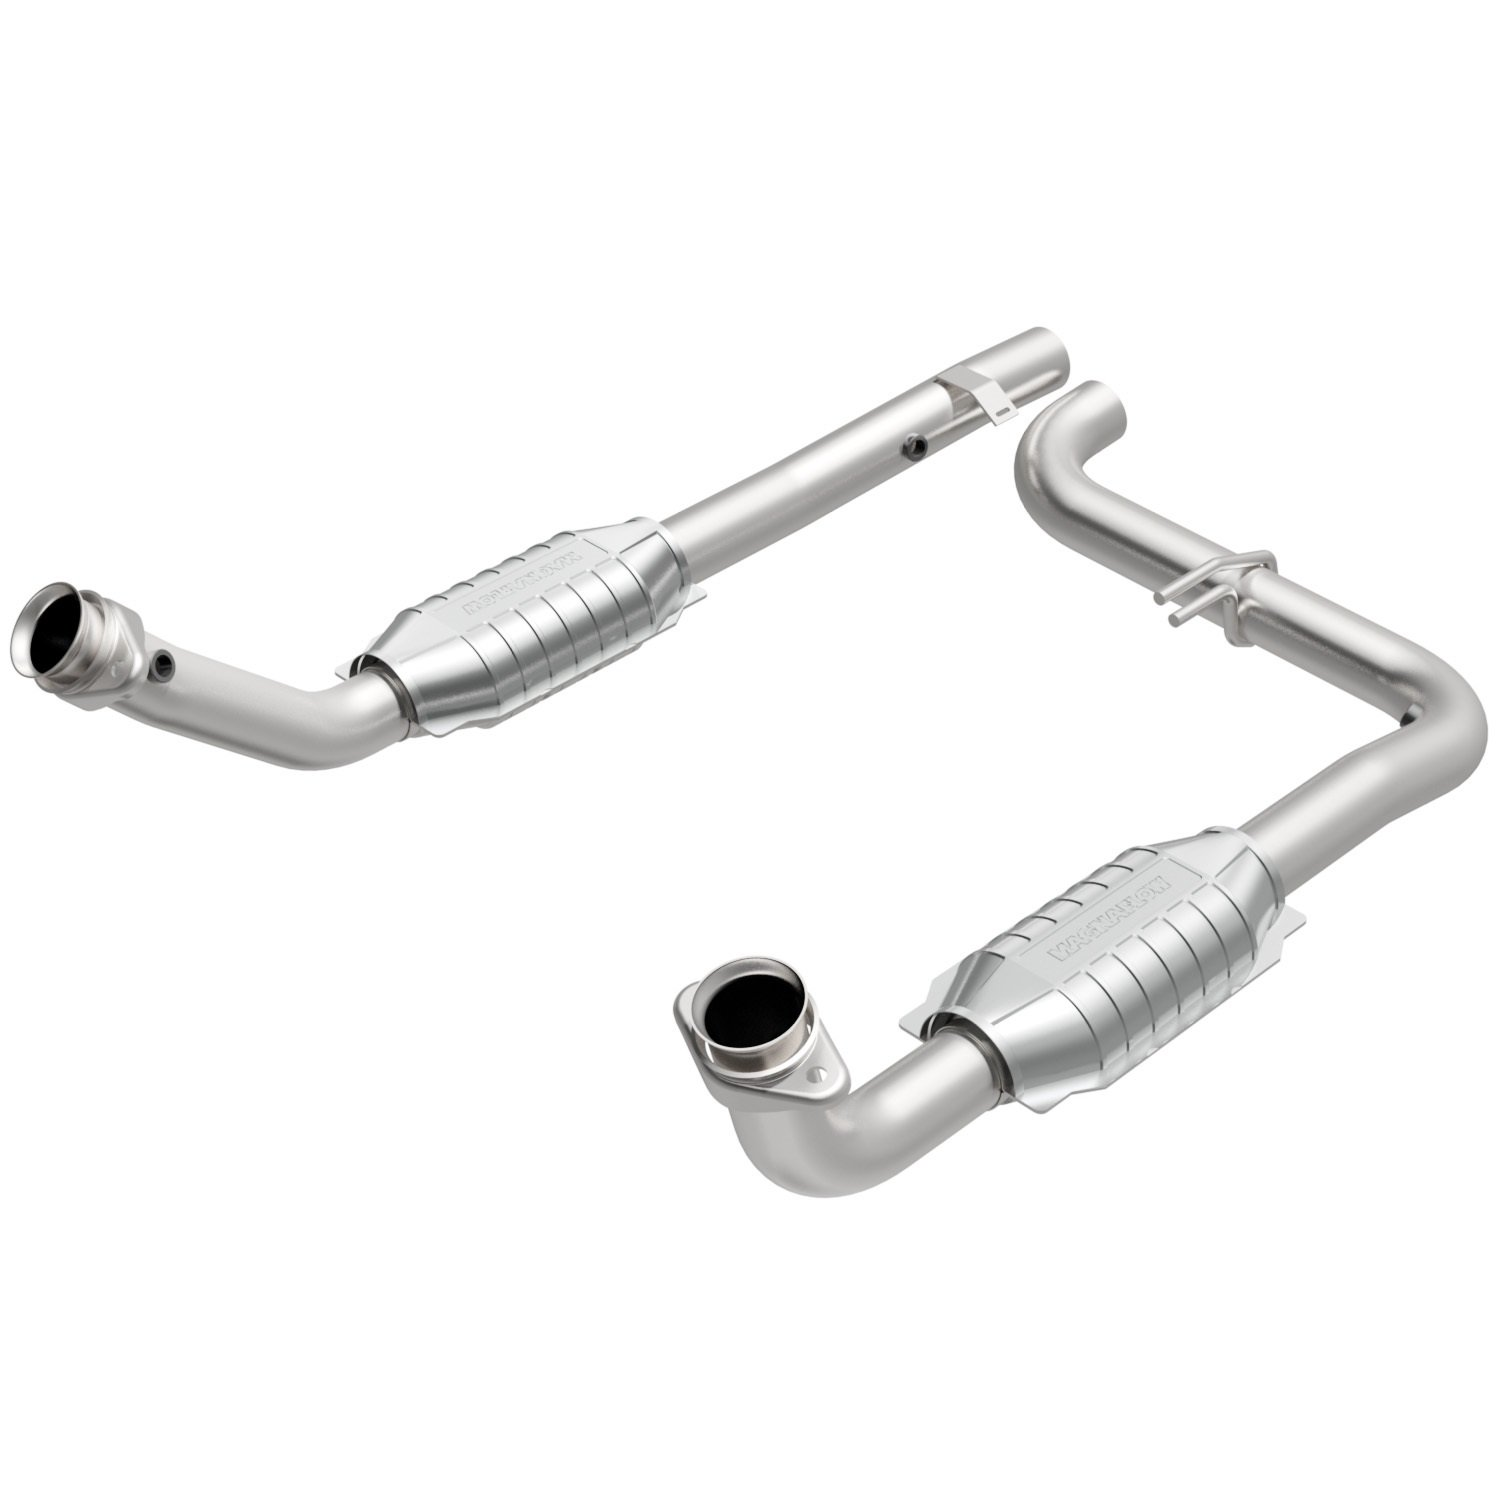 MagnaFlow 51297 Direct Fit Catalytic Converter Non CARB compliant